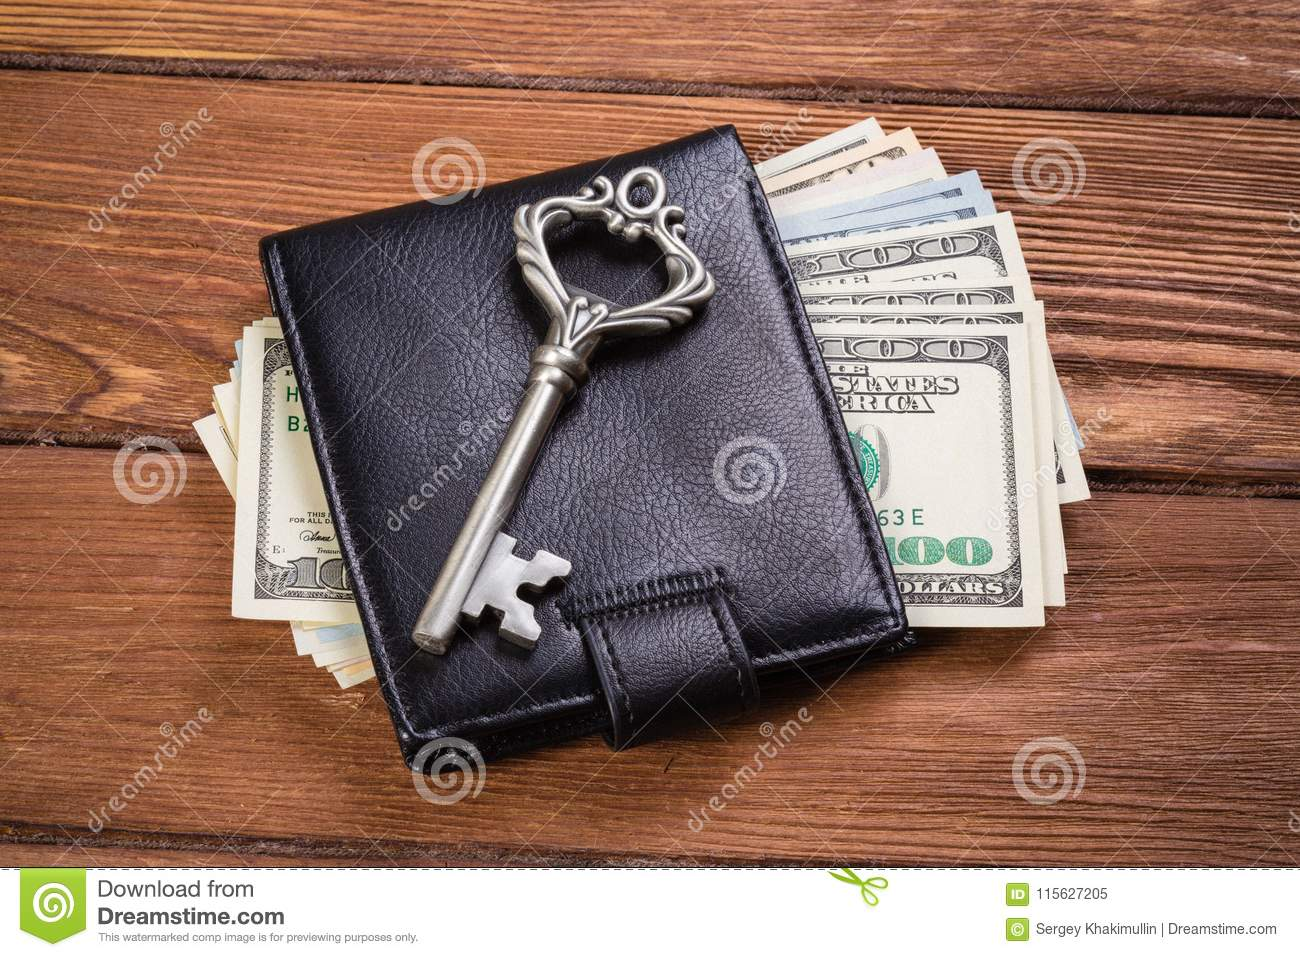 The key to money or what business is now relevant 2